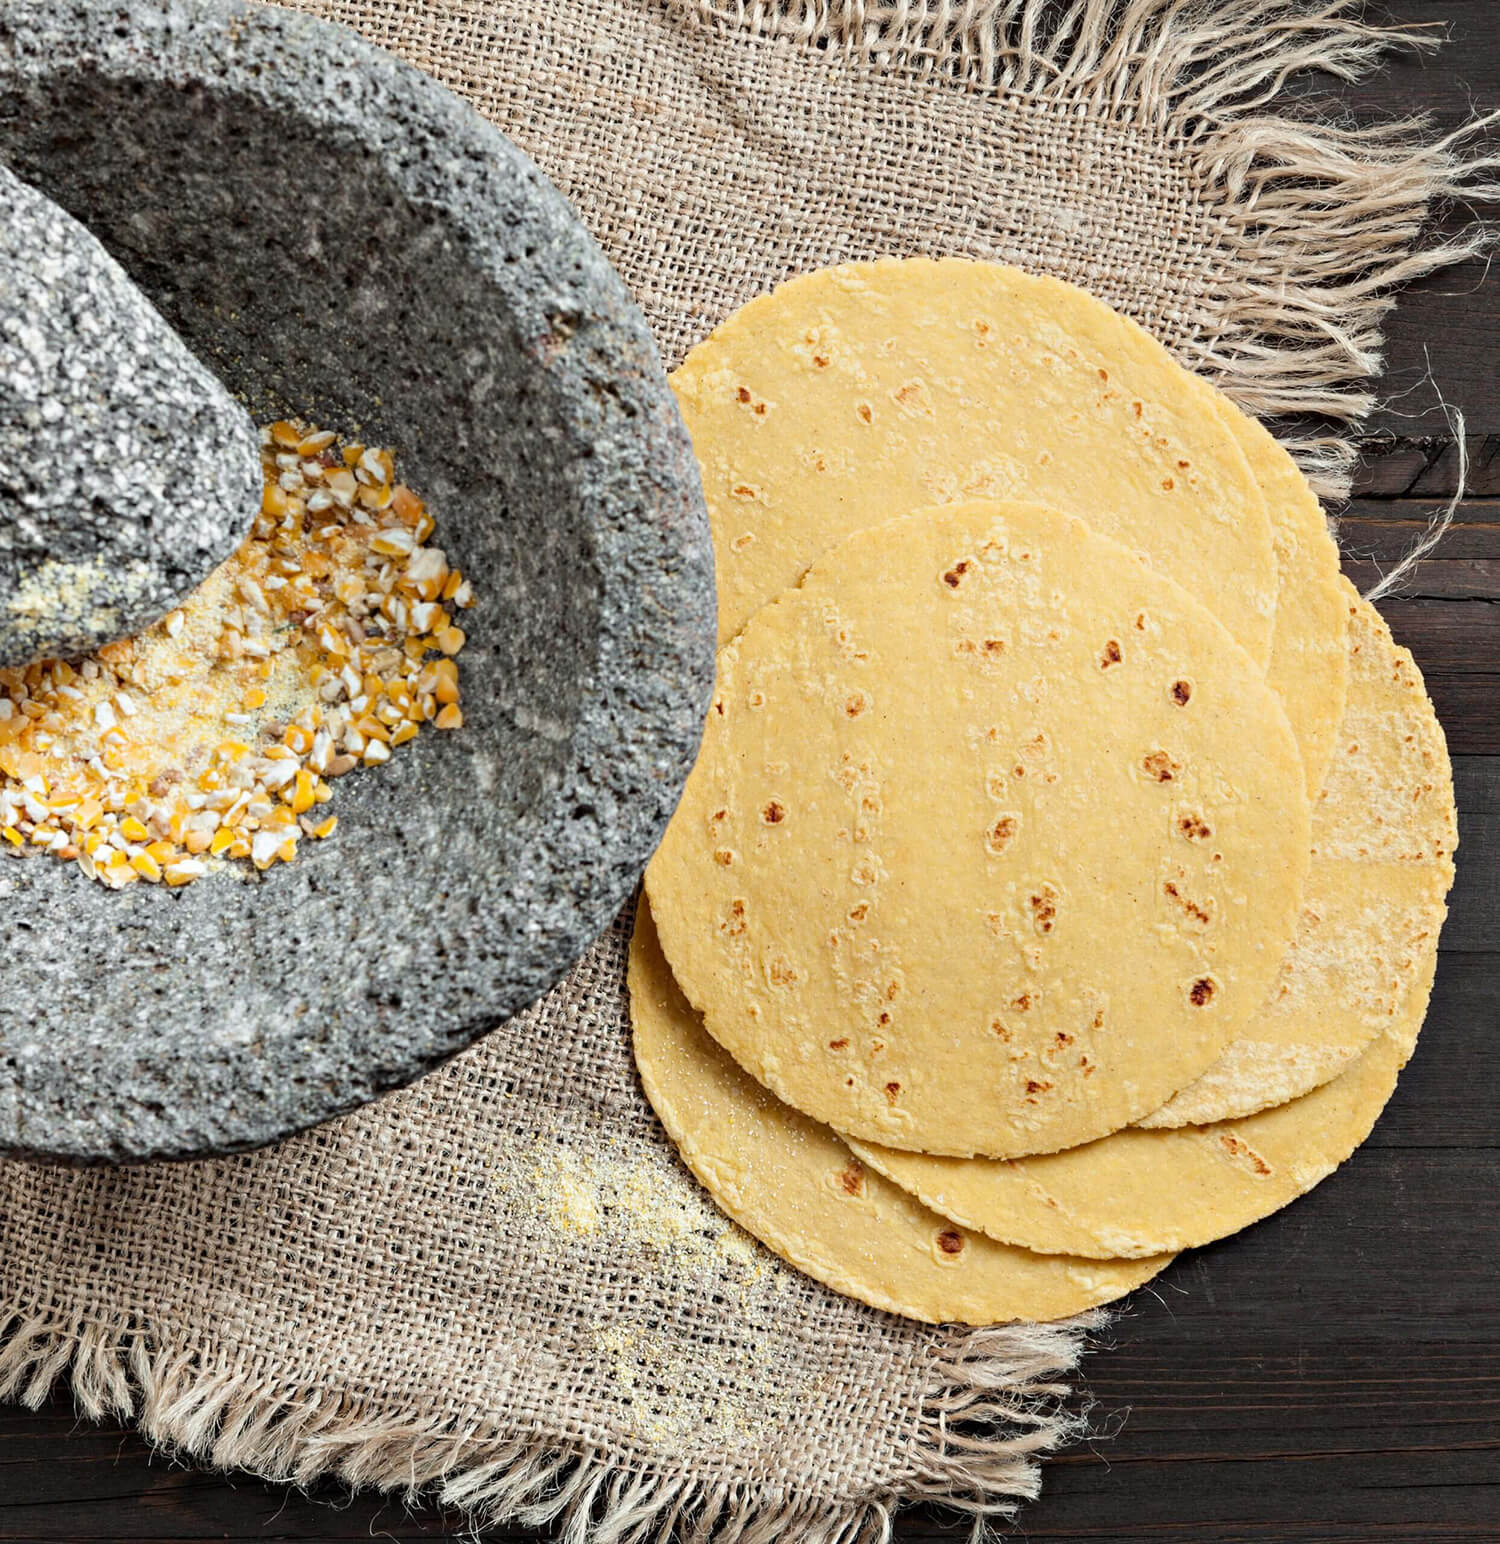 A wooden table with homemade tortillas next to a stone grinder filled with dried corn.